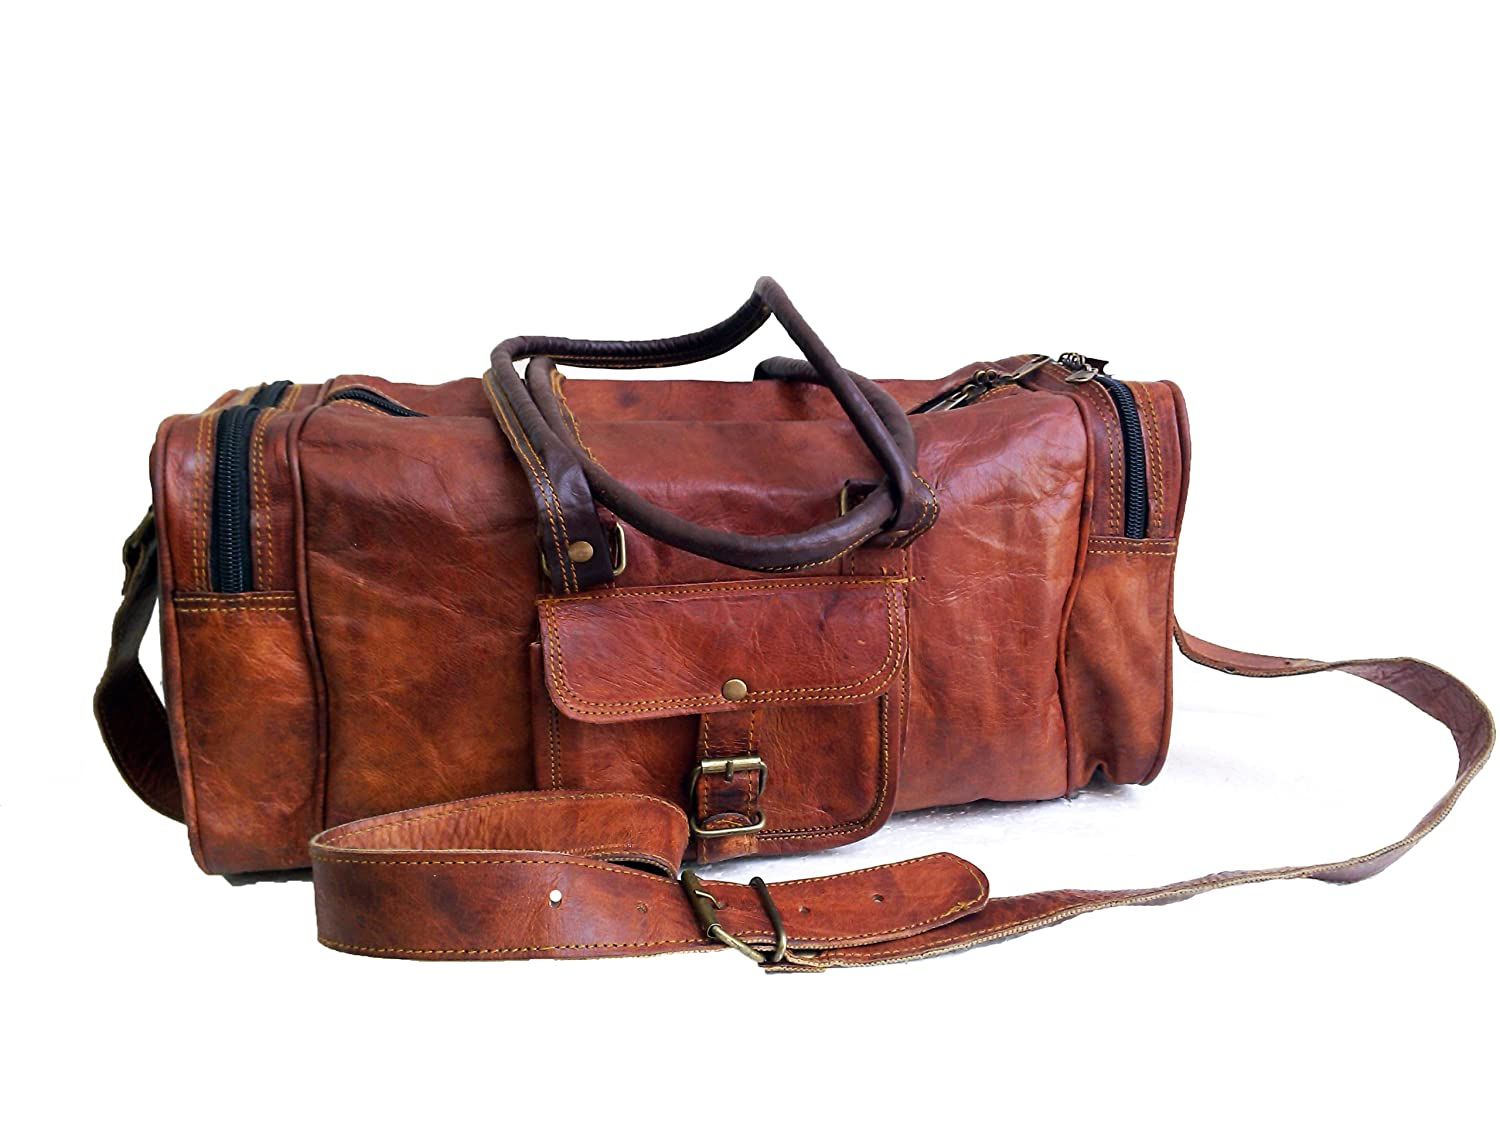 Mens Leather duffle bag carry on Small Weekend Travel Sports Gym Bag for men   Amazon.ca  Luggage   Bags 6129a69371bc7